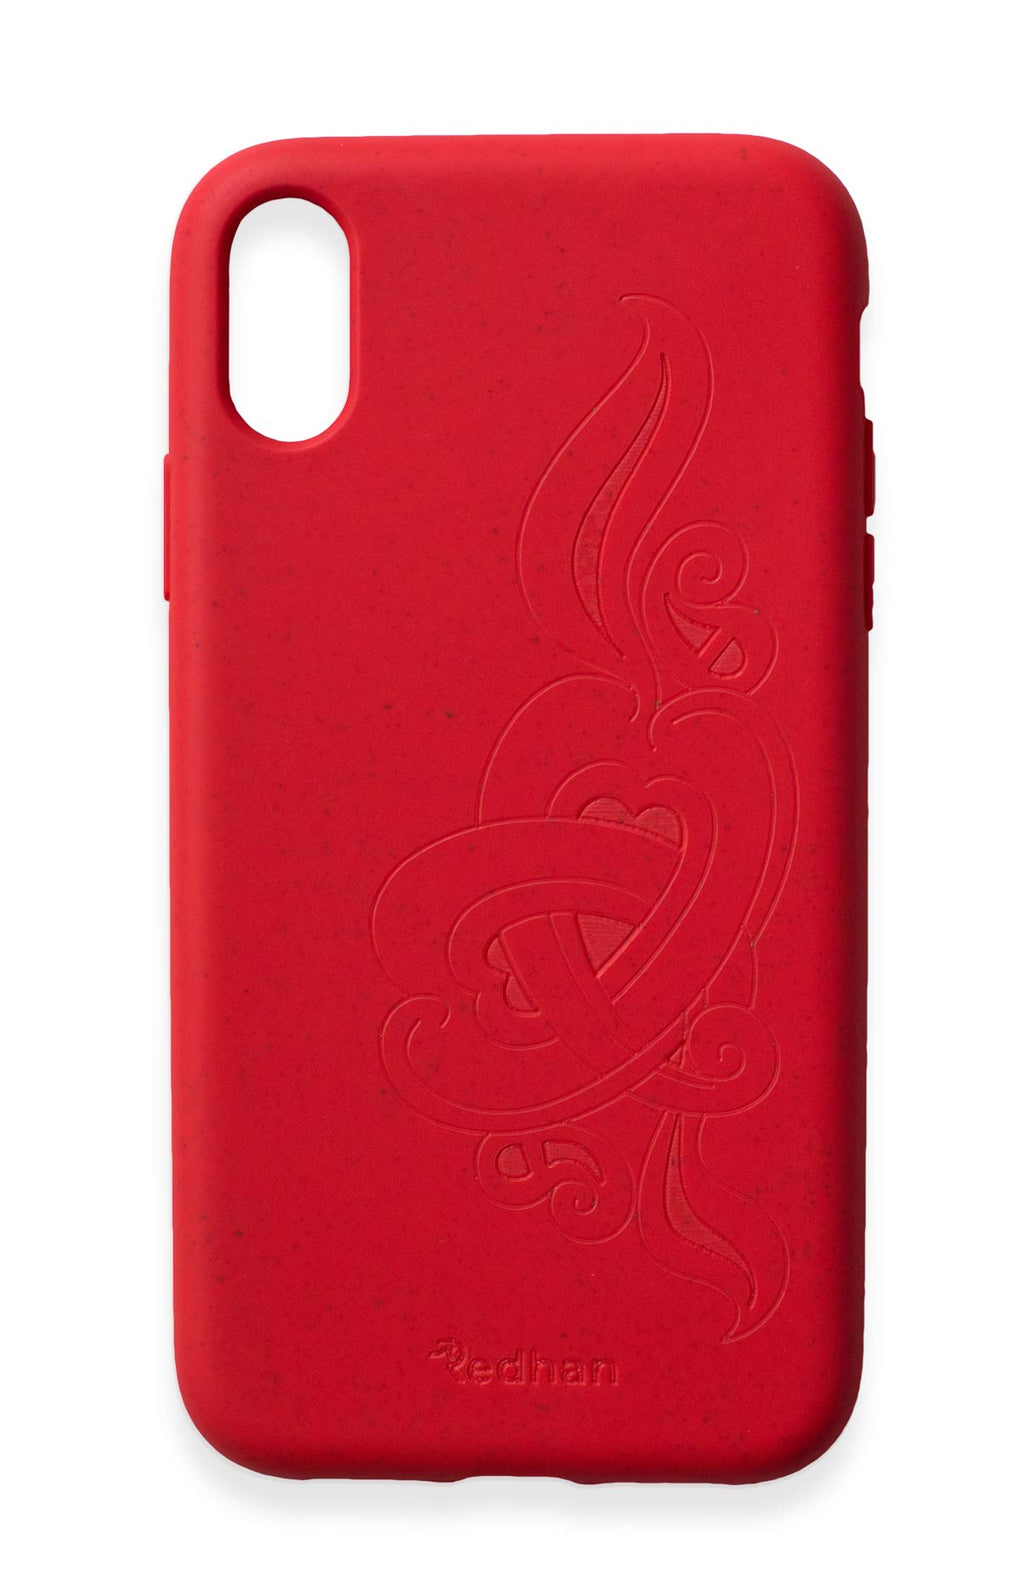 'Hirigaa' or Stone Art in Ruby Red  - iPhone X / XS